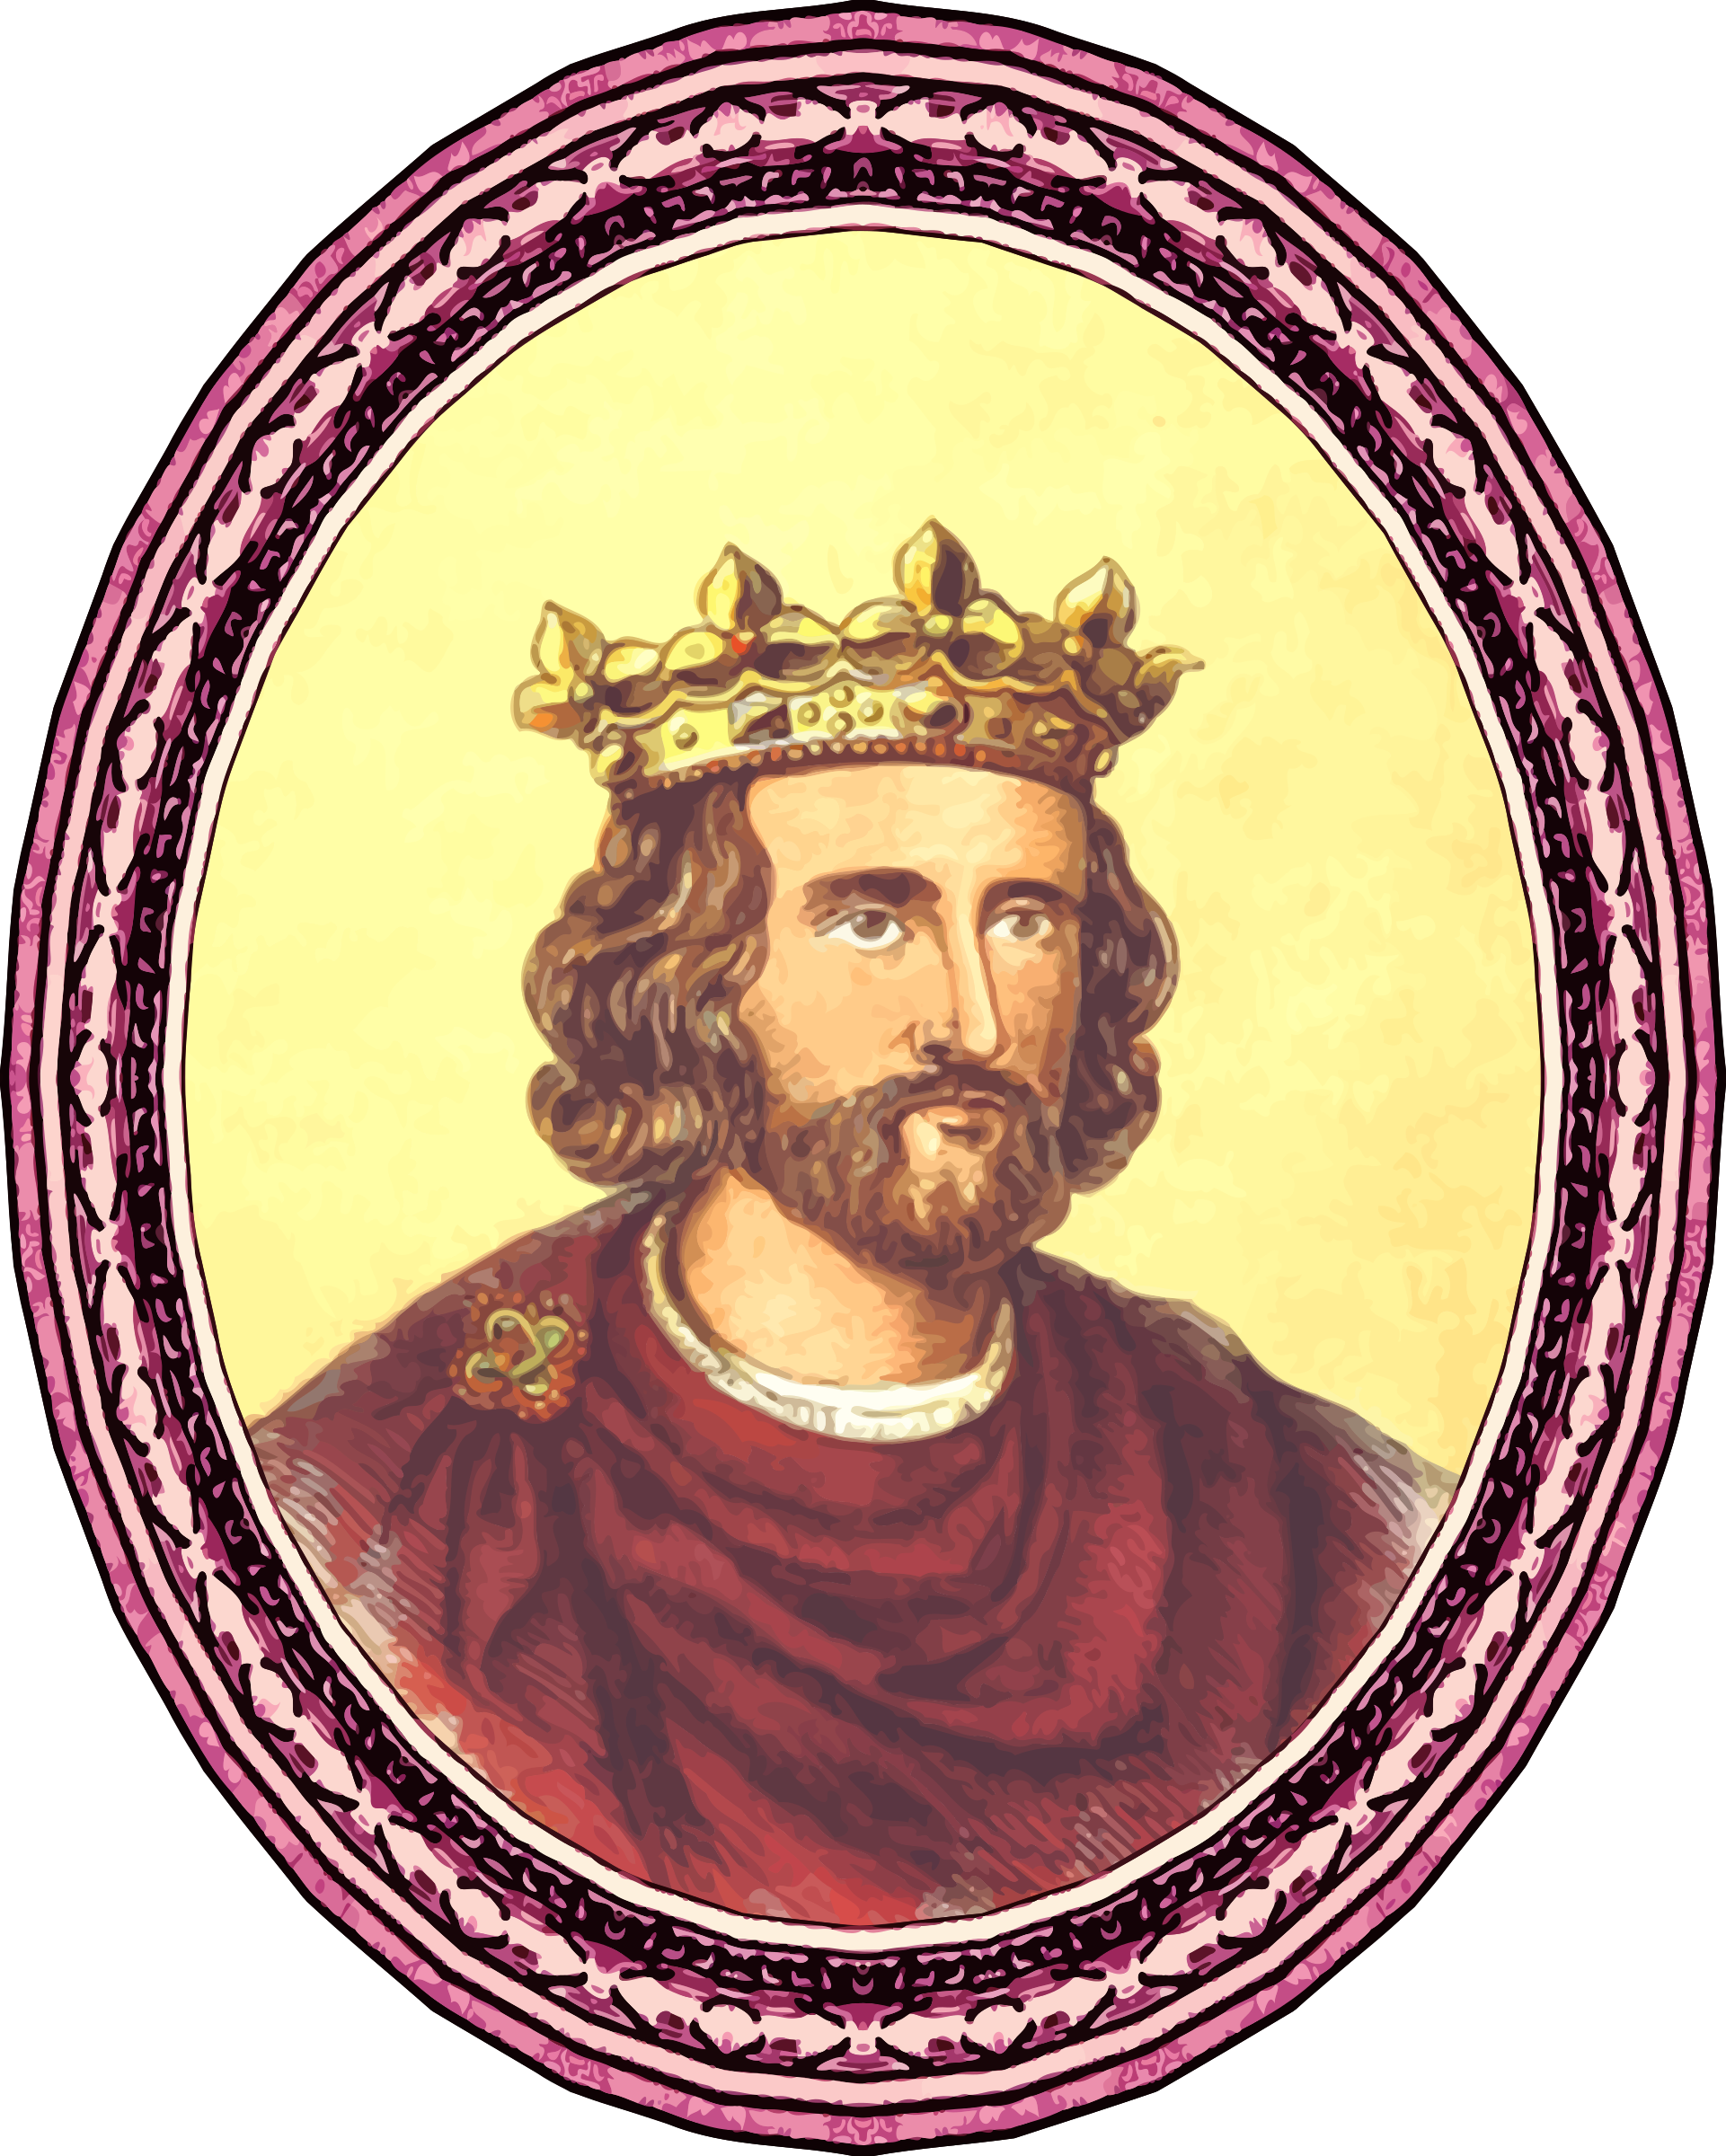 King Henry III (framed) by Firkin